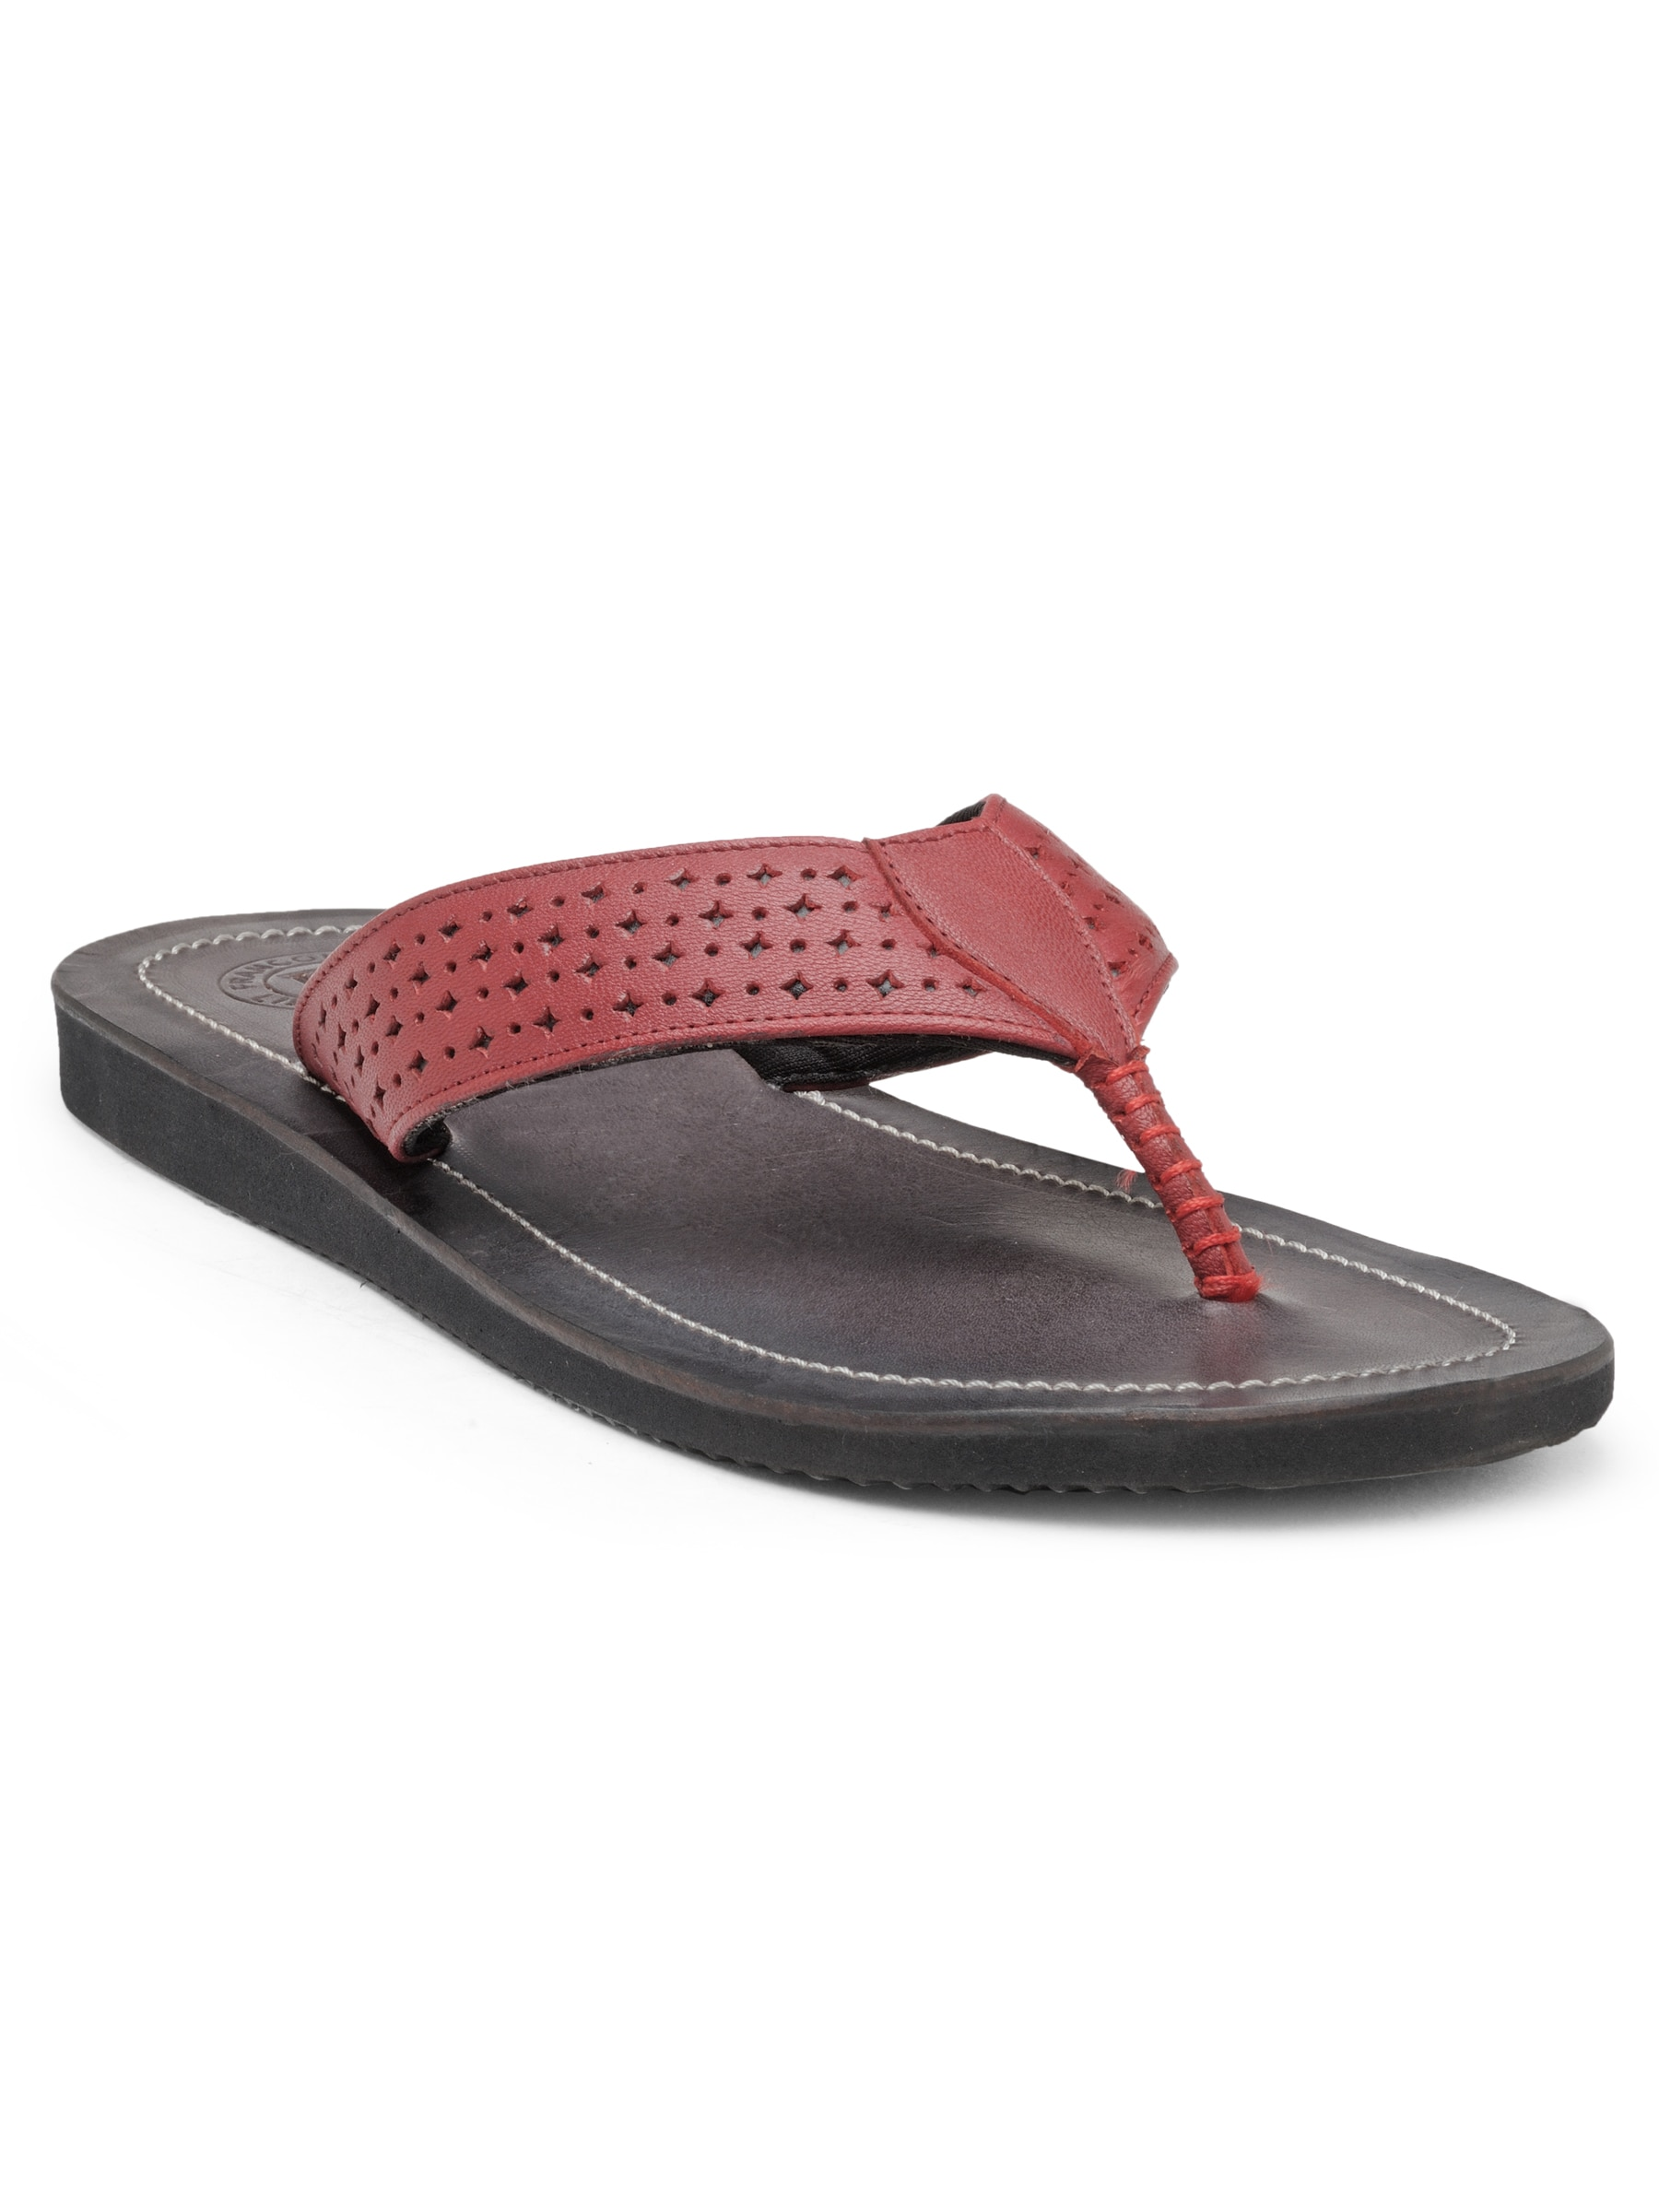 29fb013b9bcb Franco Leone Red Slippers for Men online in India at Best price on ...